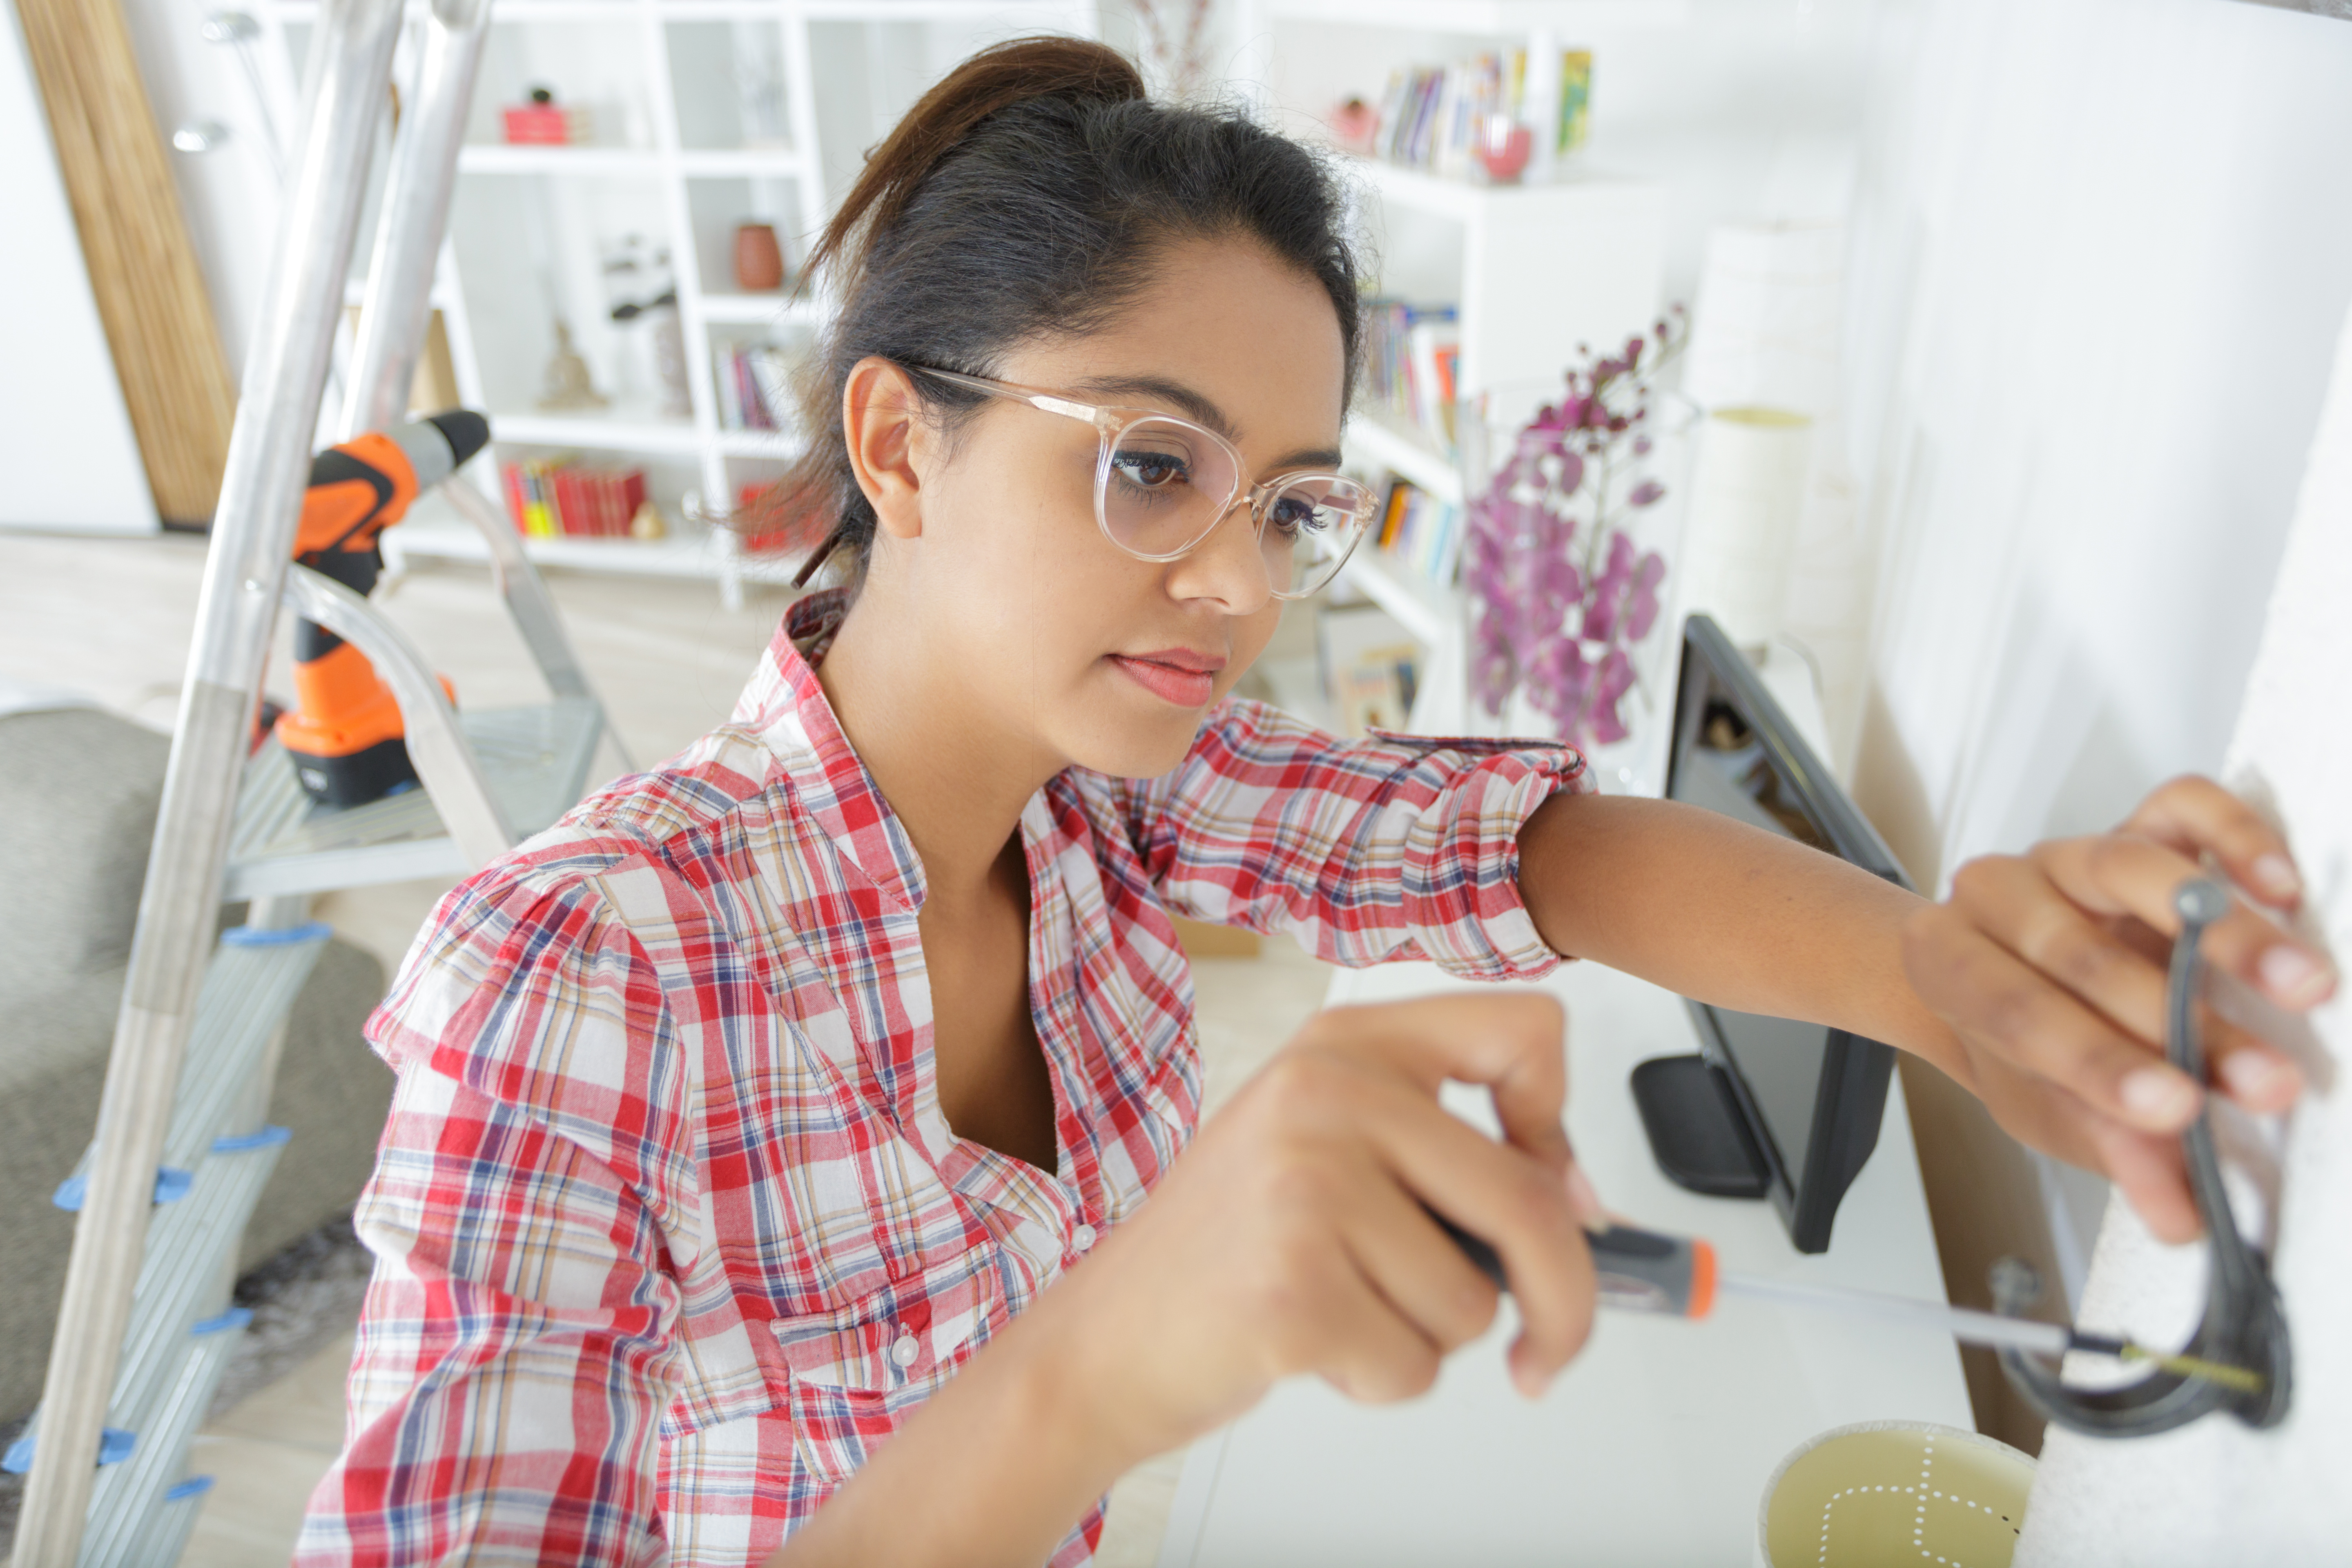 Photo: woman in plaid blouse screws a coat hook into the wall of her home. In the background are her desk with computer, bookshelves, and a ladder with power drill.